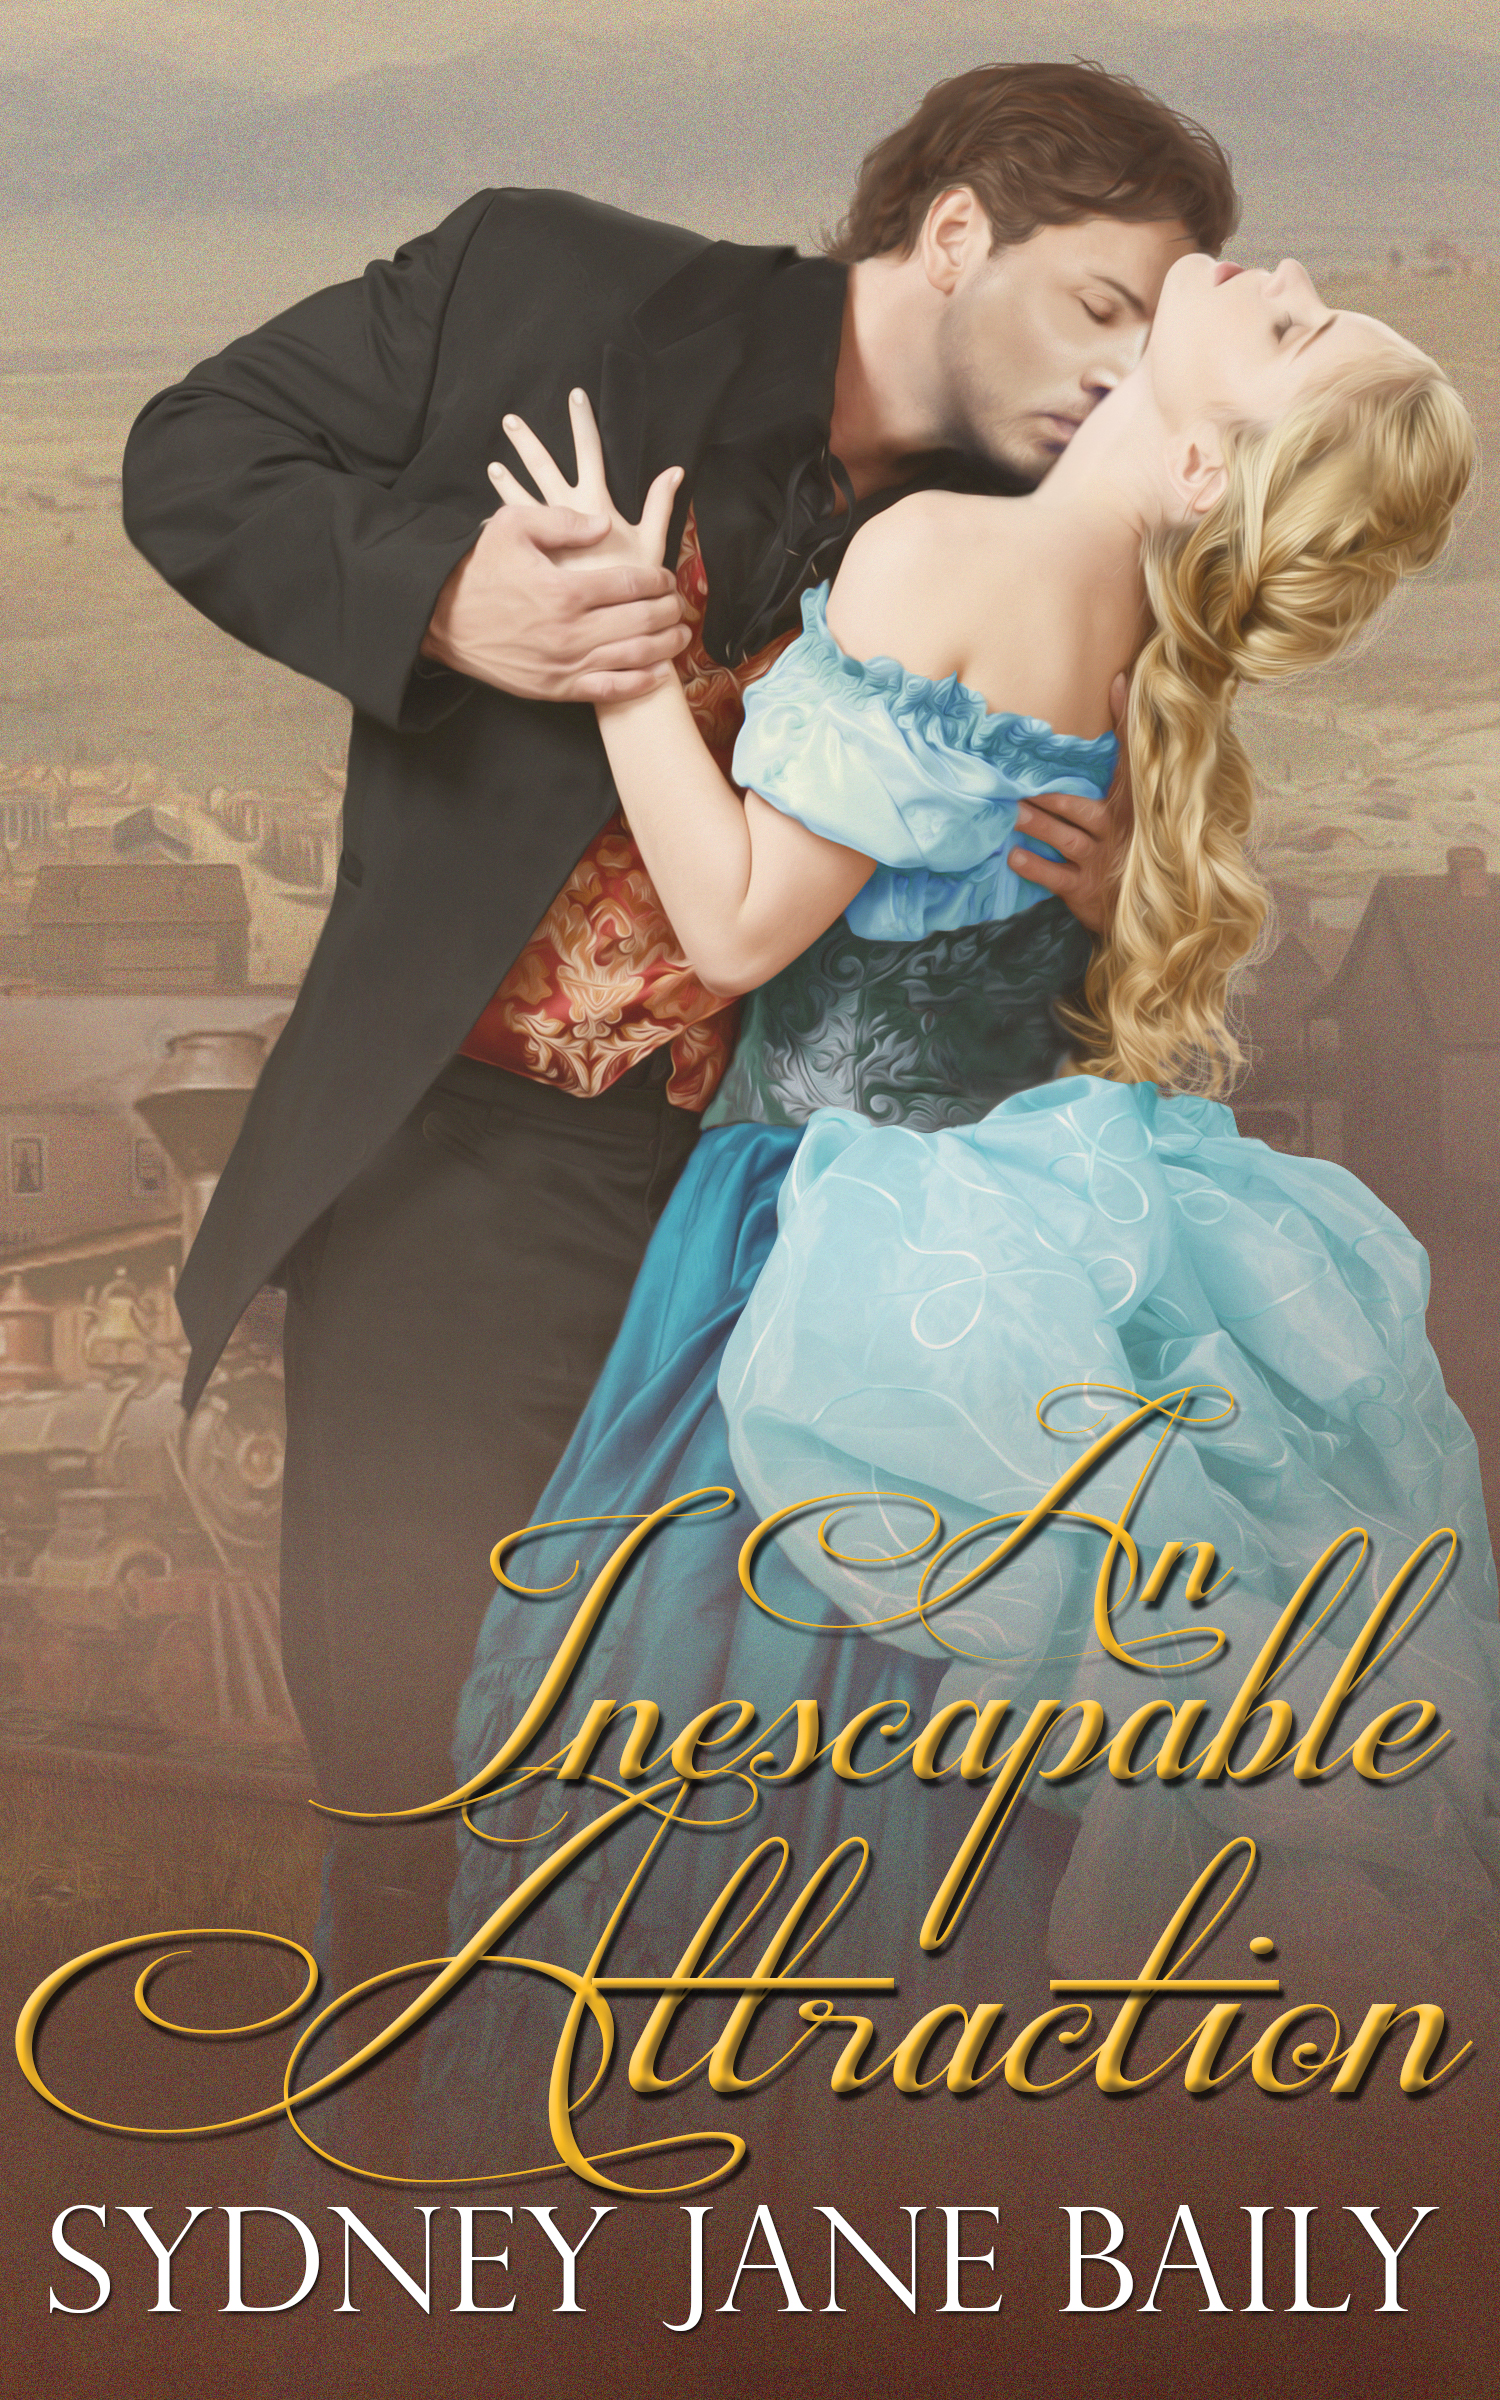 An Inescapable Attraction cover